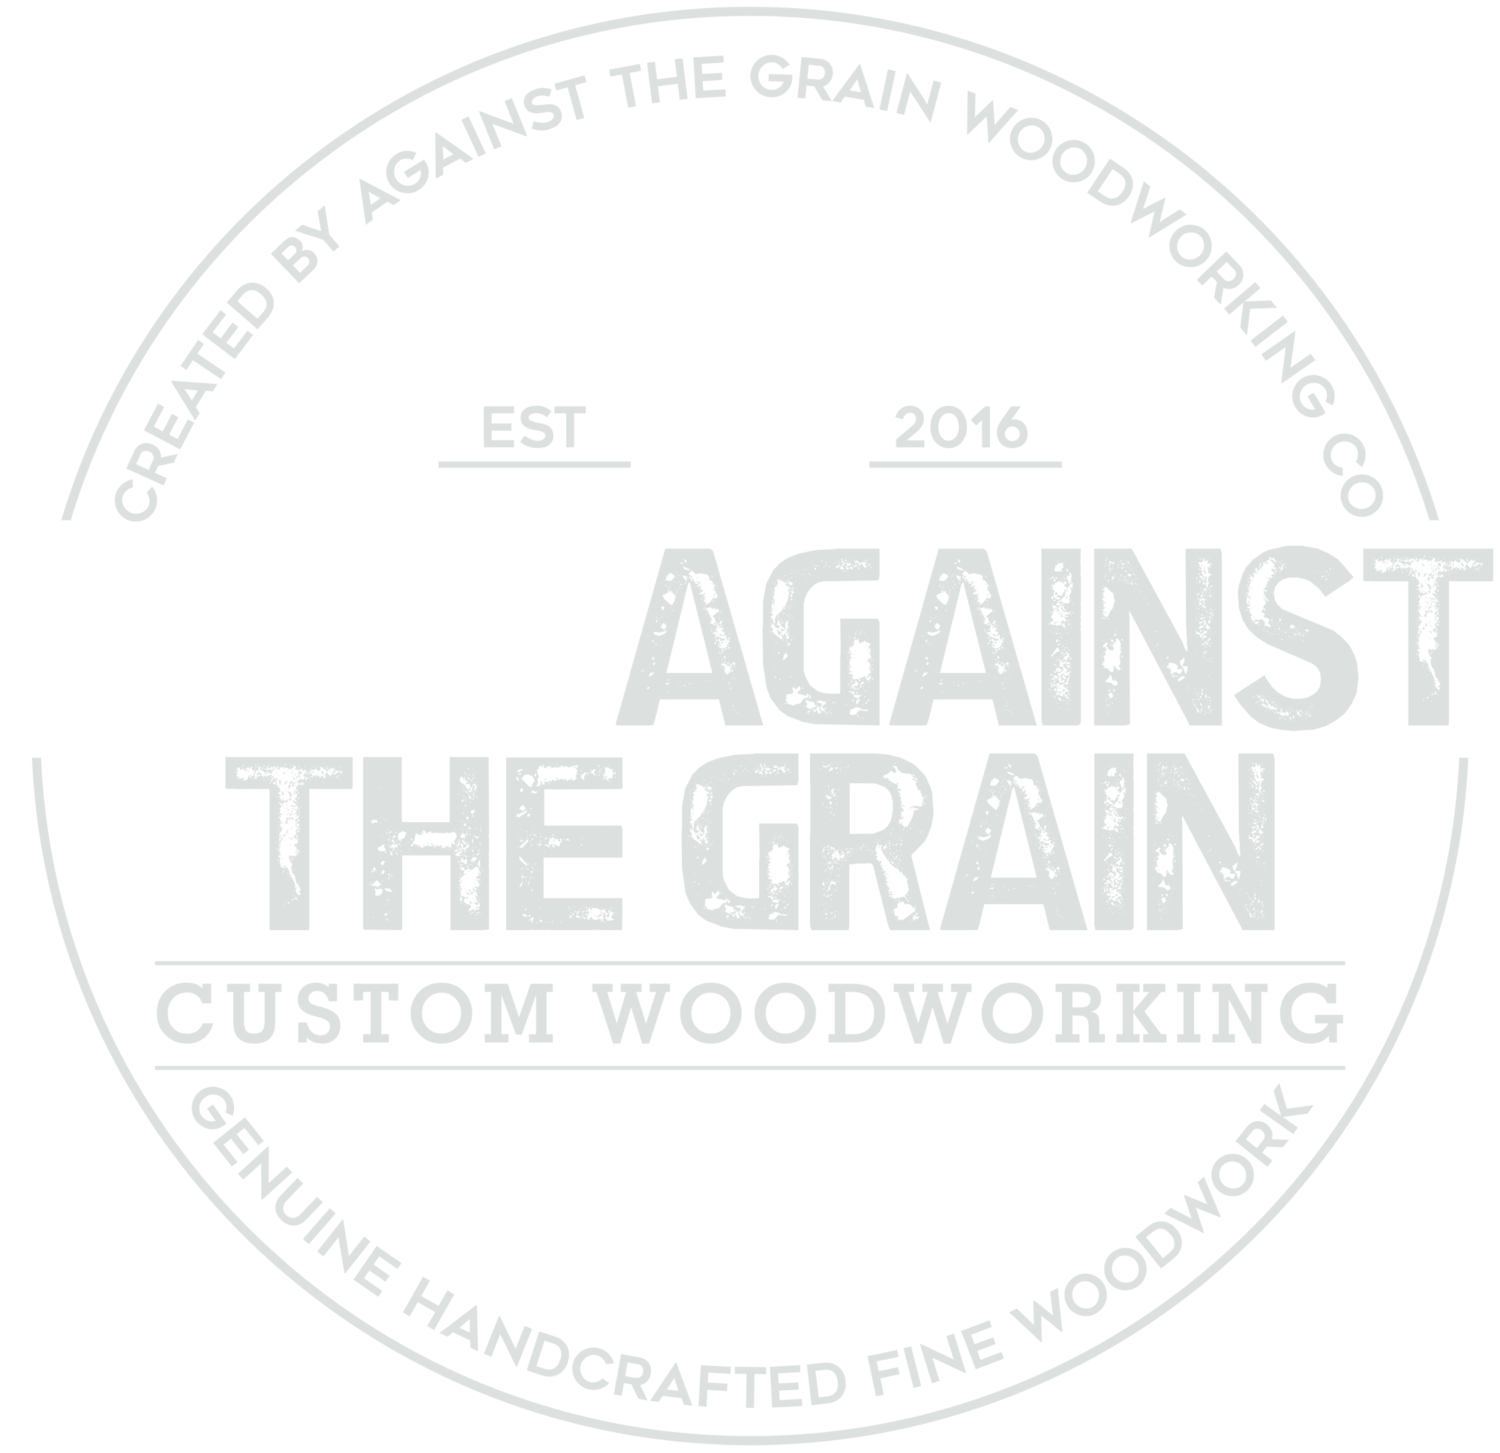 Build Against The Grain Woodworking Co